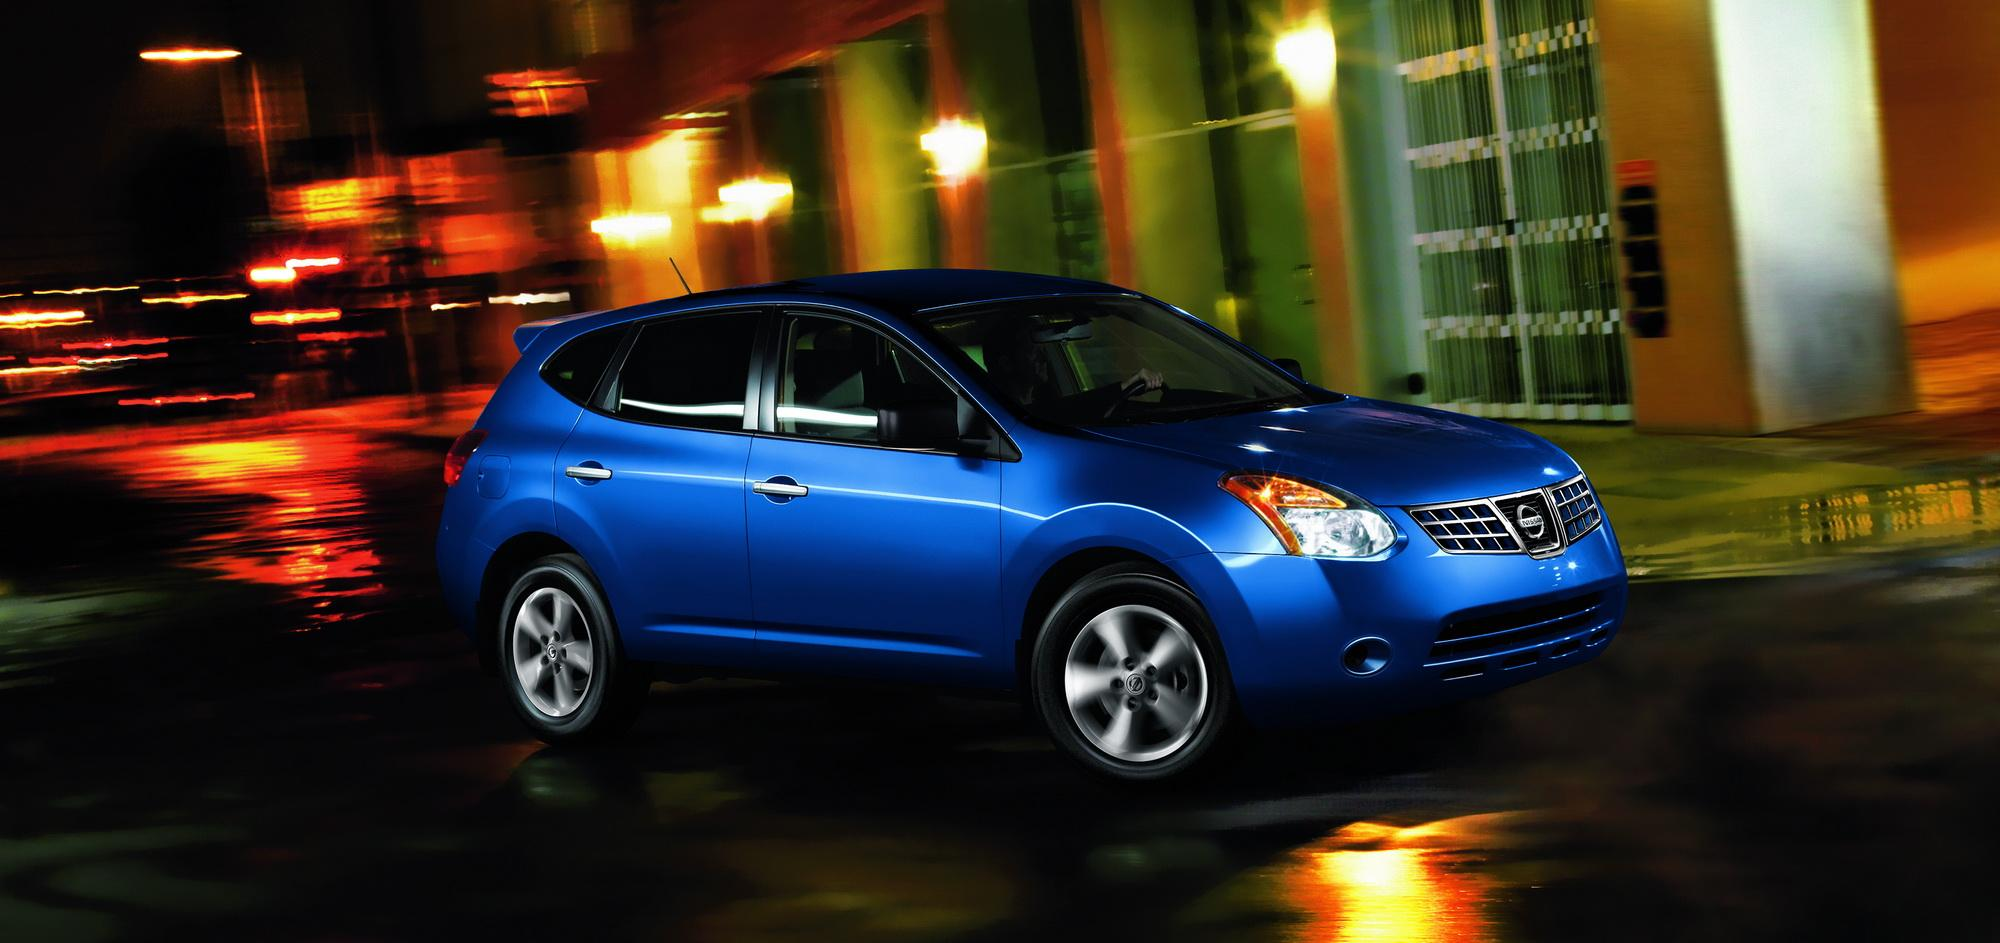 All Types Of Cars >> 2010 Nissan Rogue | Top Speed